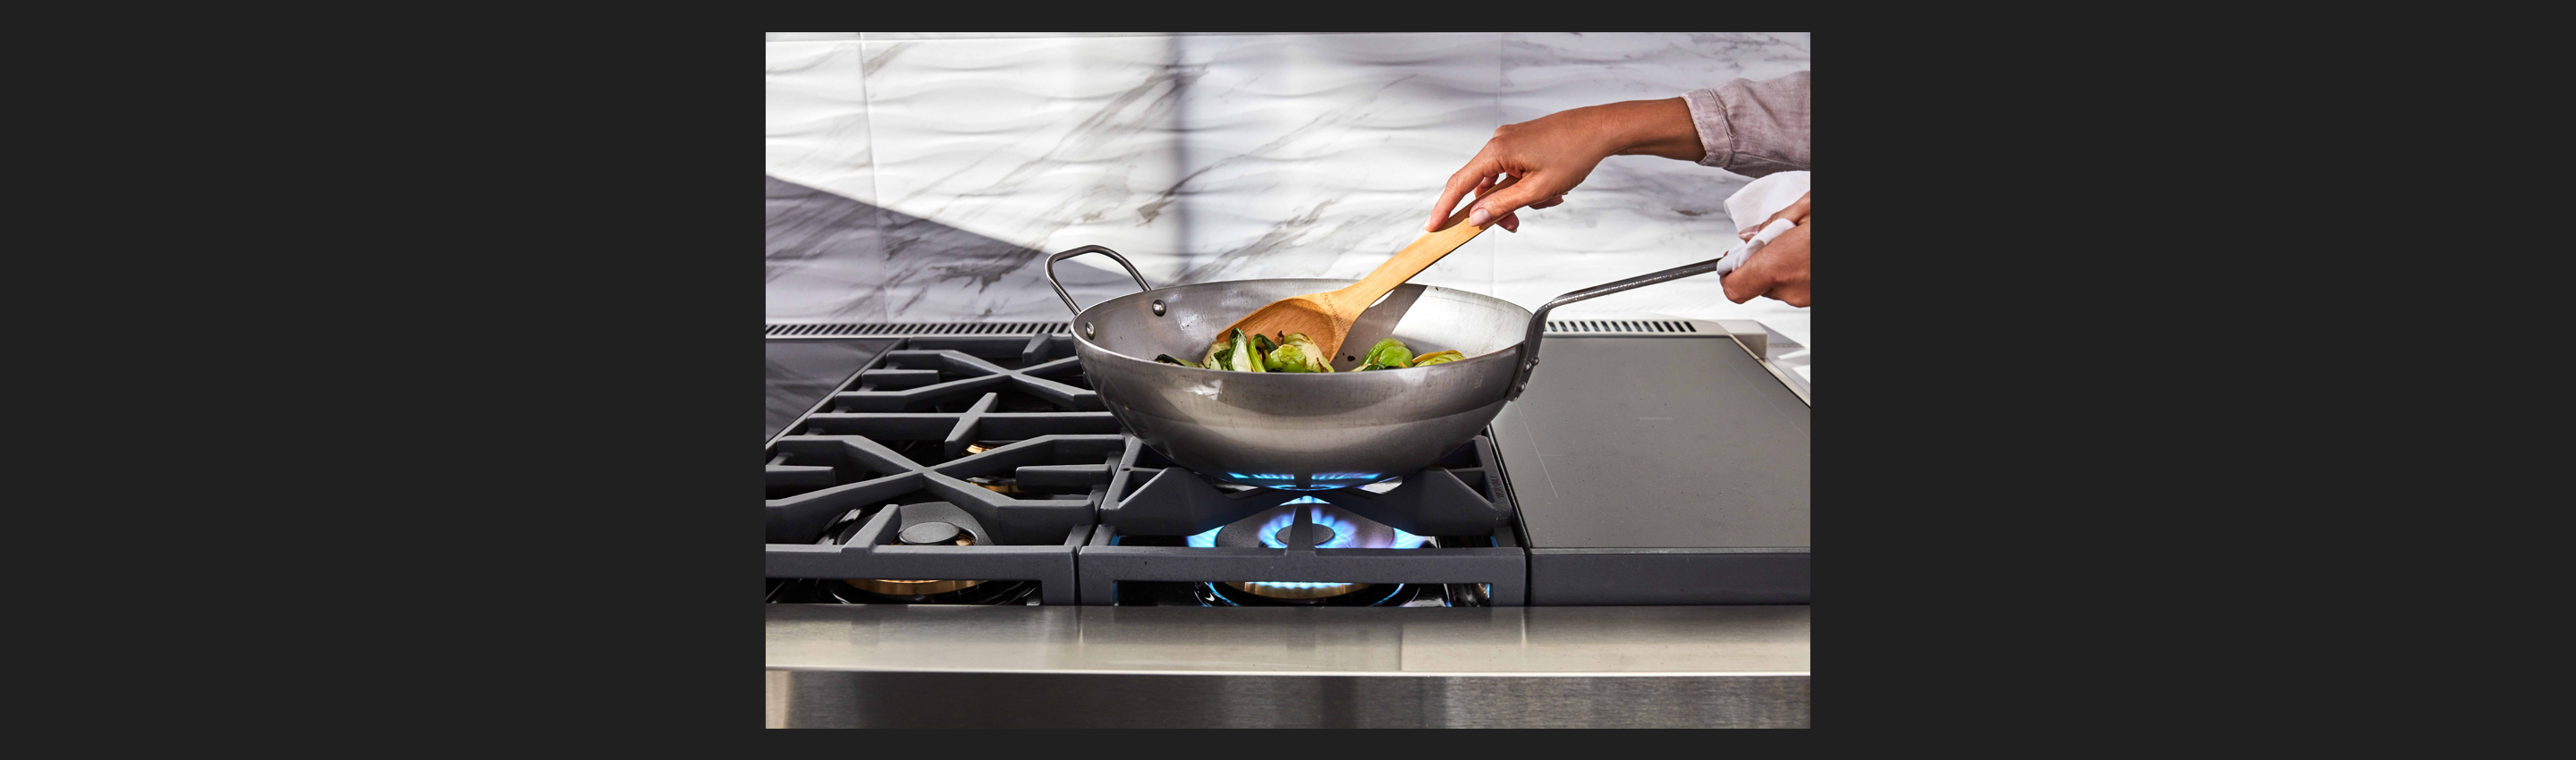 "48"" Dual-Fuel Pro Range with Convertible Wok Grate"